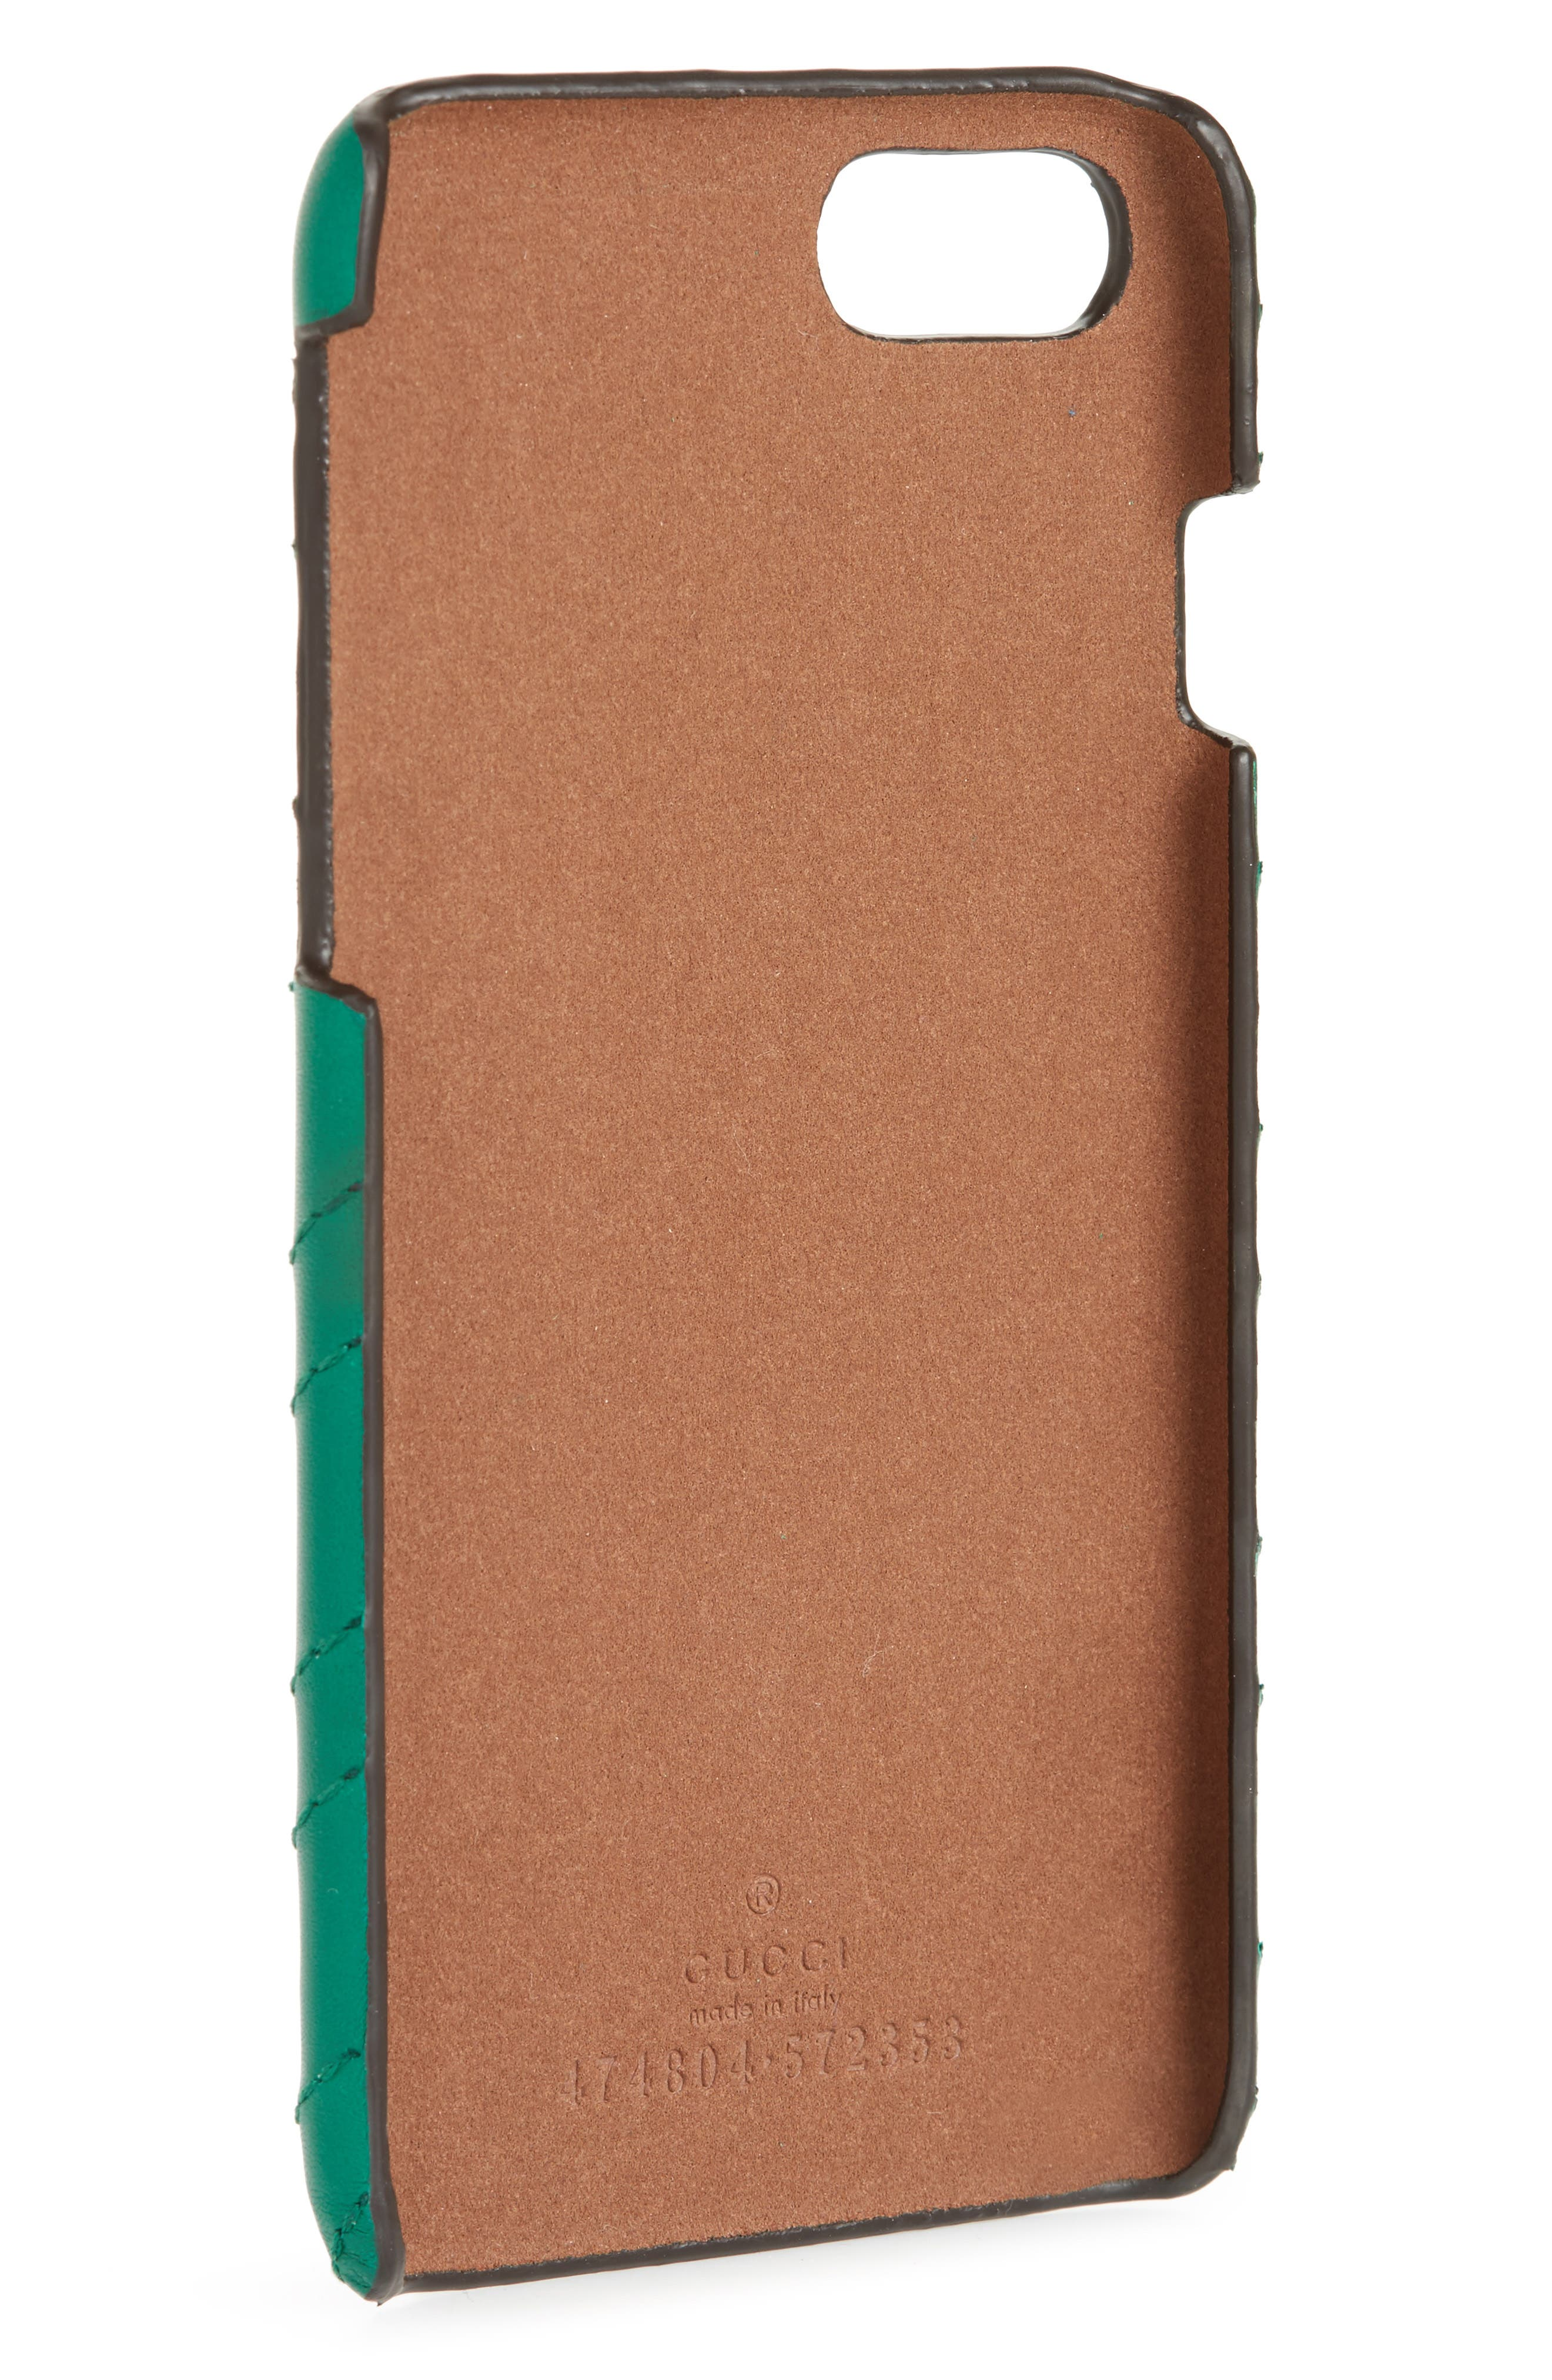 GUCCI, GG Marmont Leather iPhone 7 Case, Alternate thumbnail 2, color, EMERALD